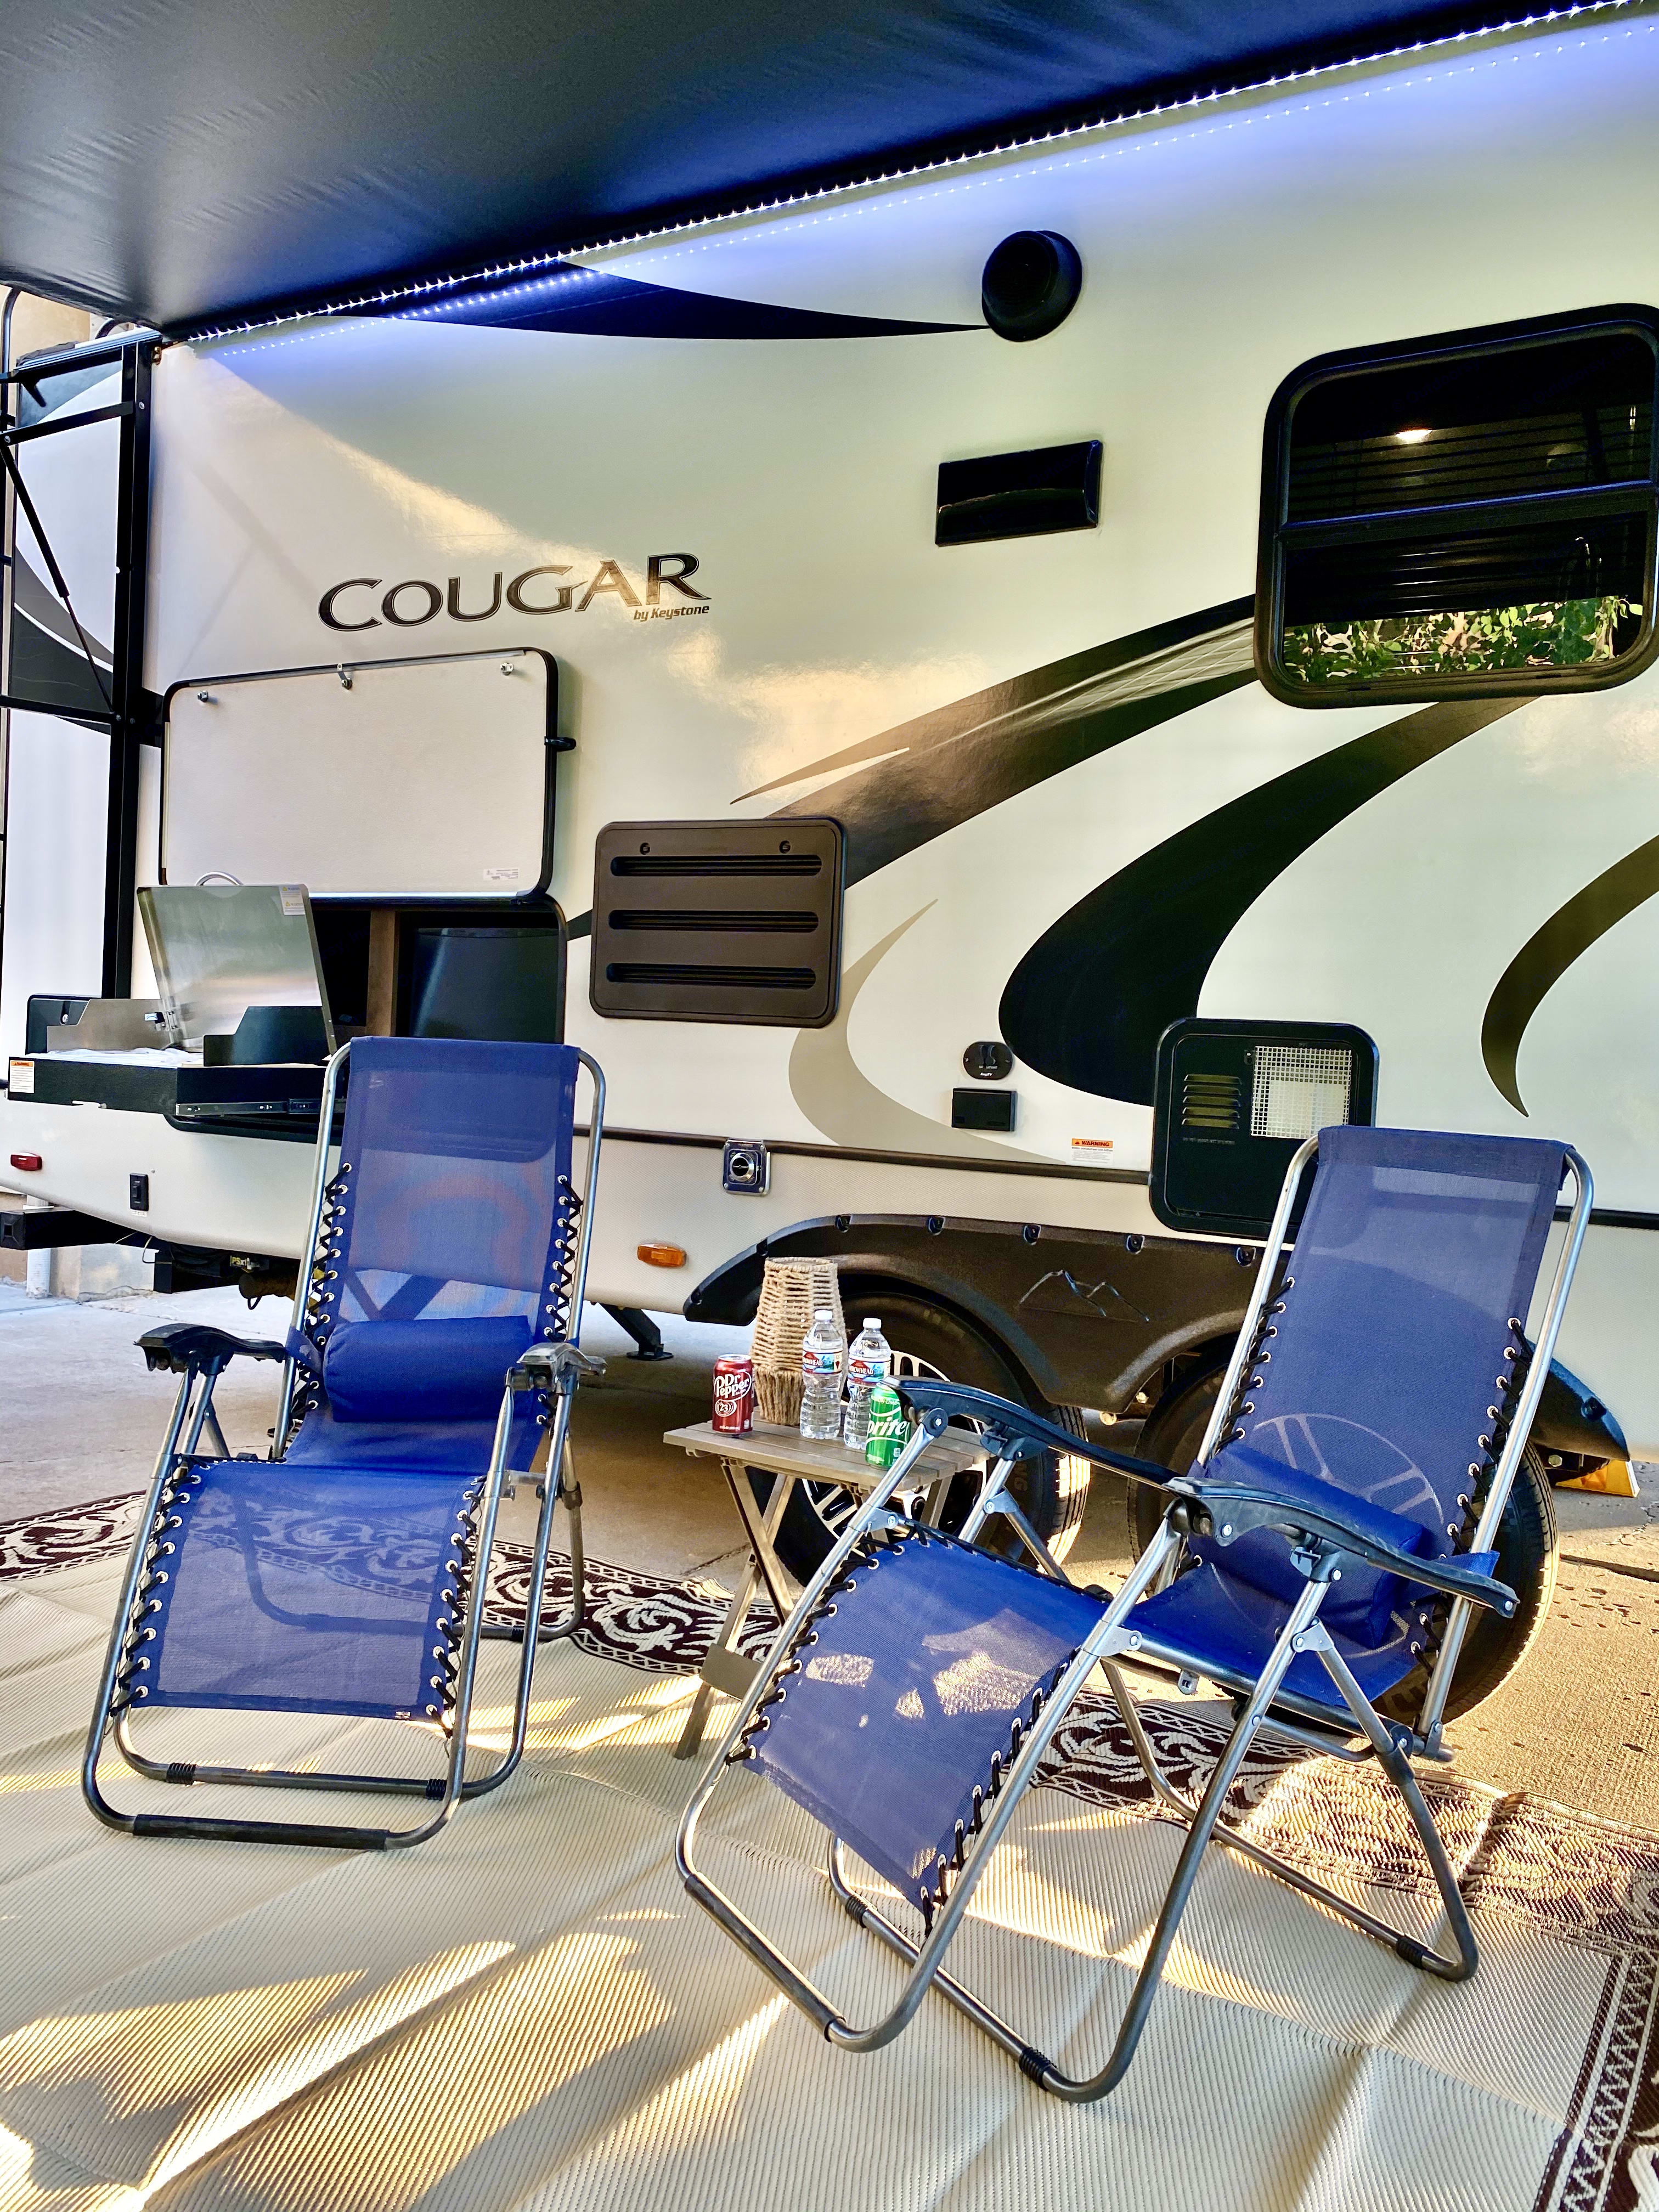 Zero Gravity Chairs Set Up Next To The Outdoor Grill and Fridge Underneath LED Lit Awning. Keystone CougarHalf-Ton 2020